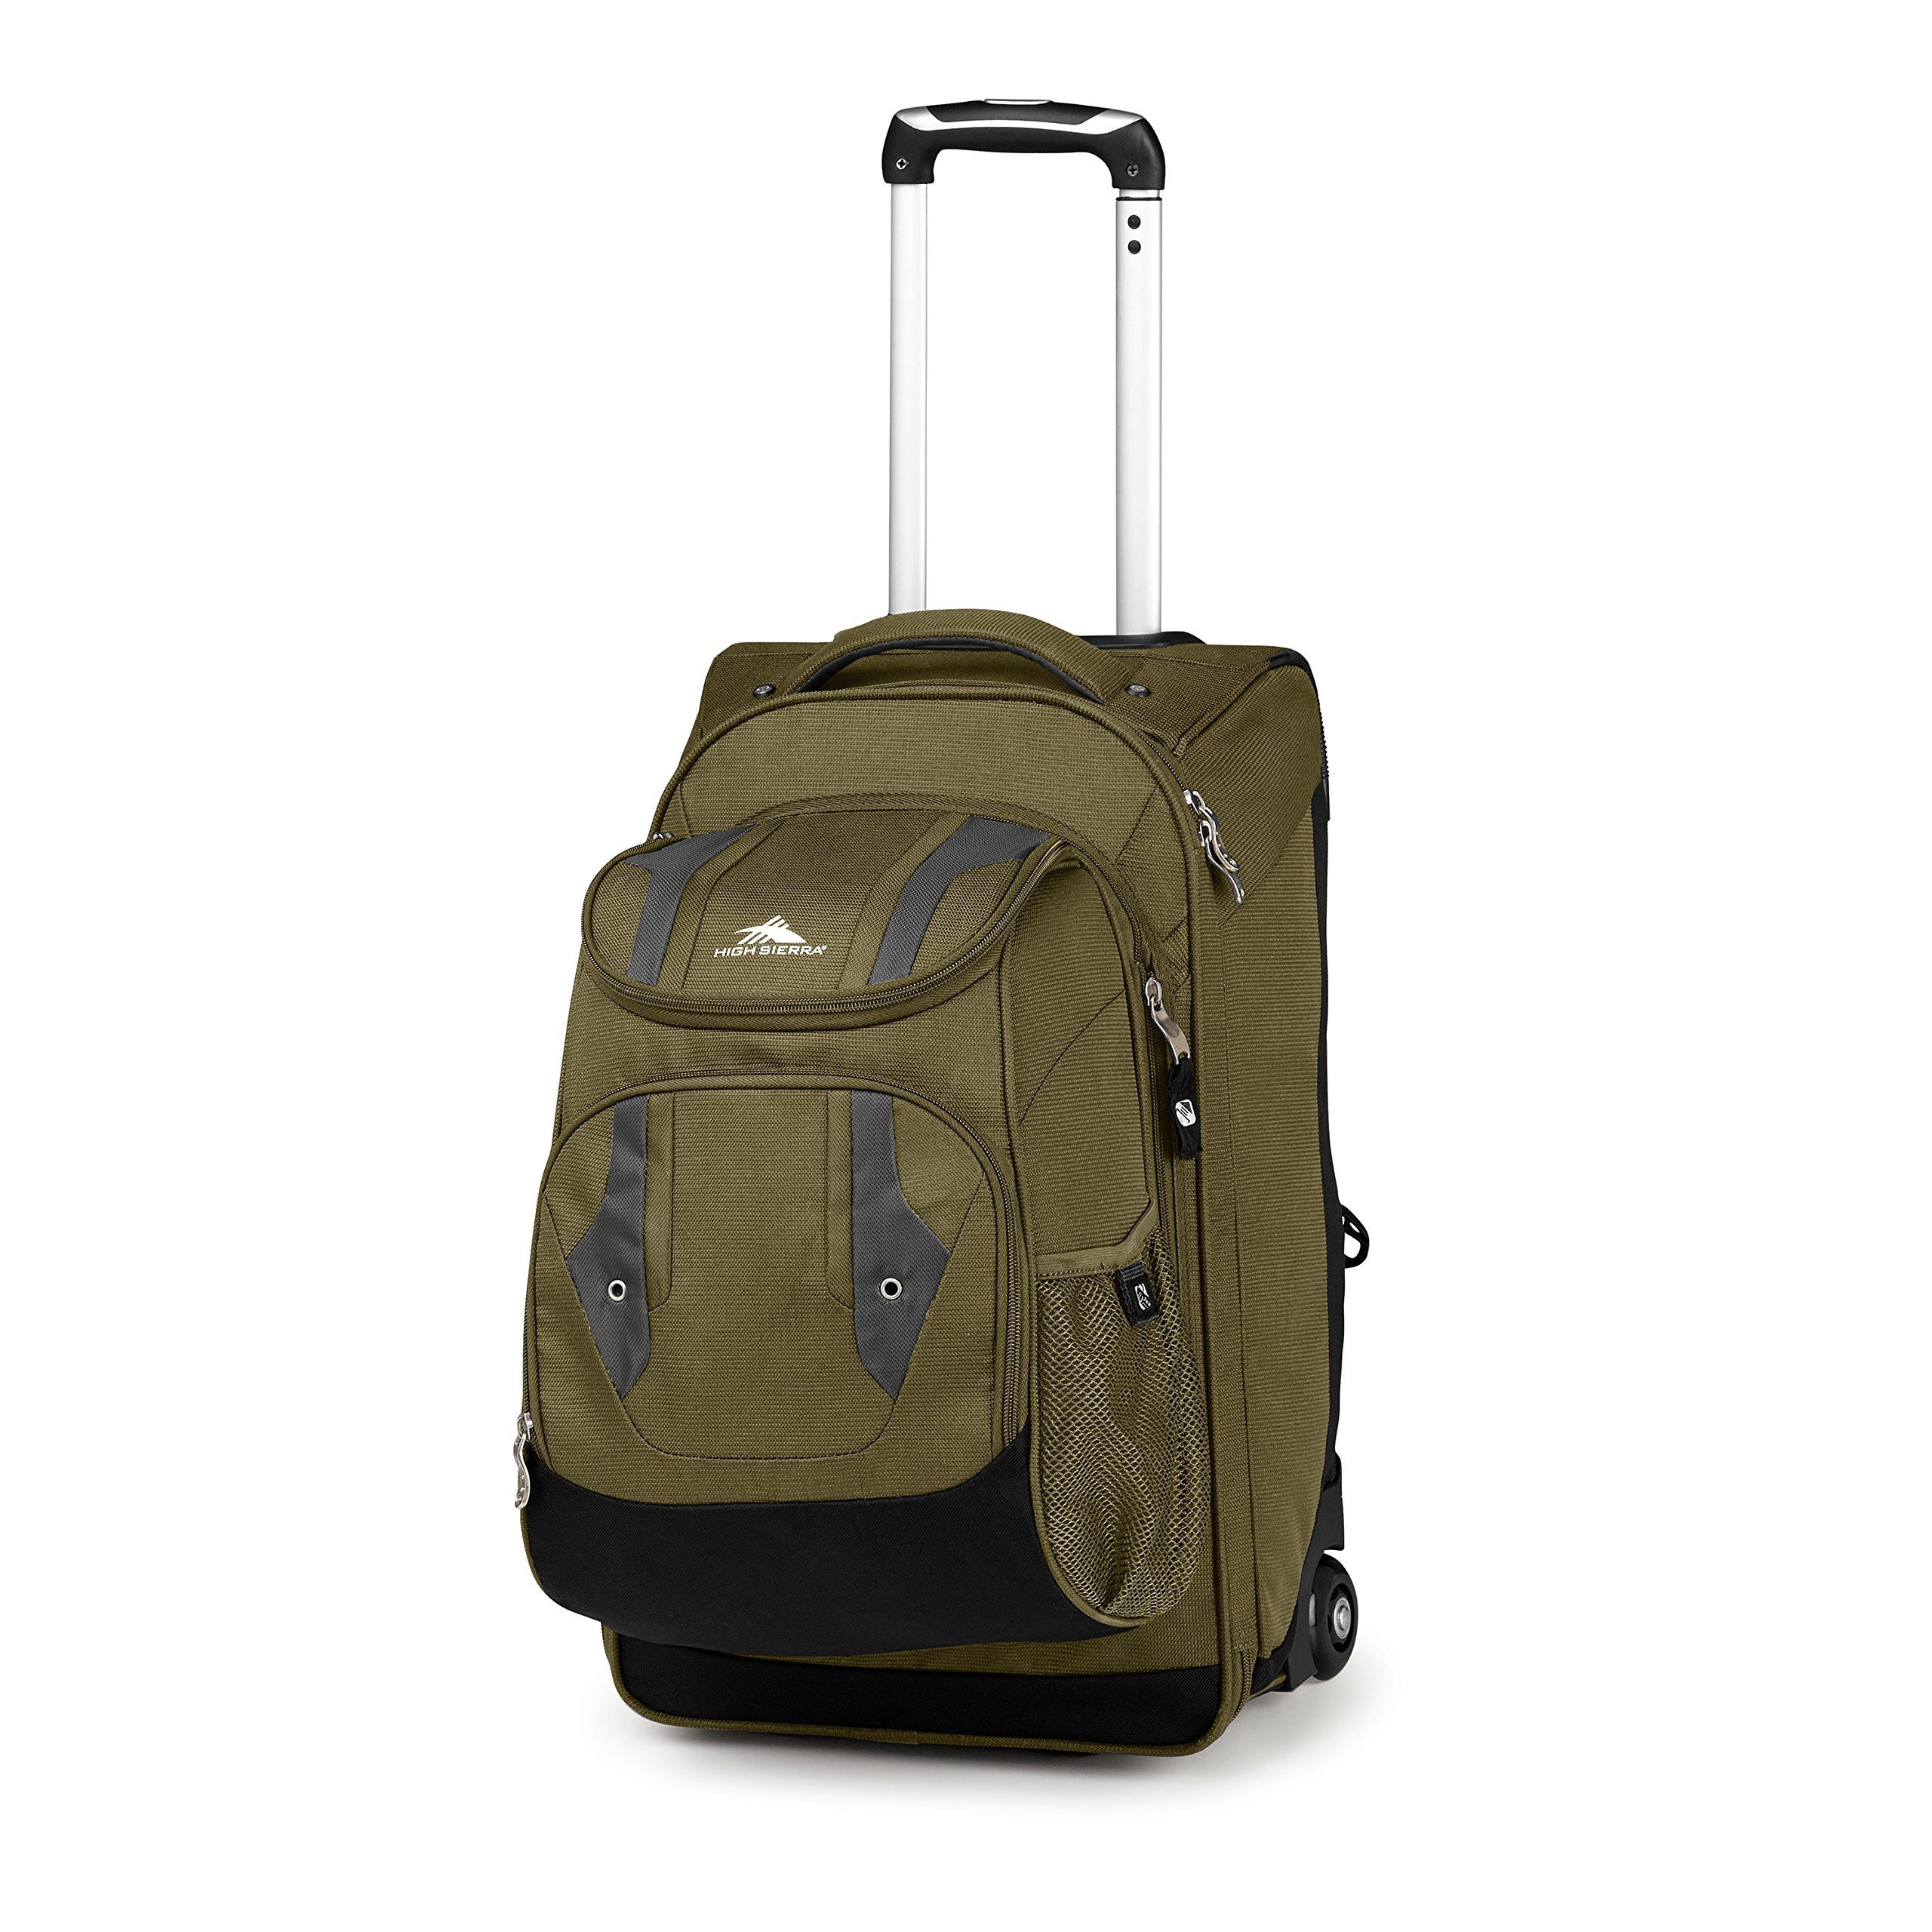 Rolling Backpacks For Travel npWazm81